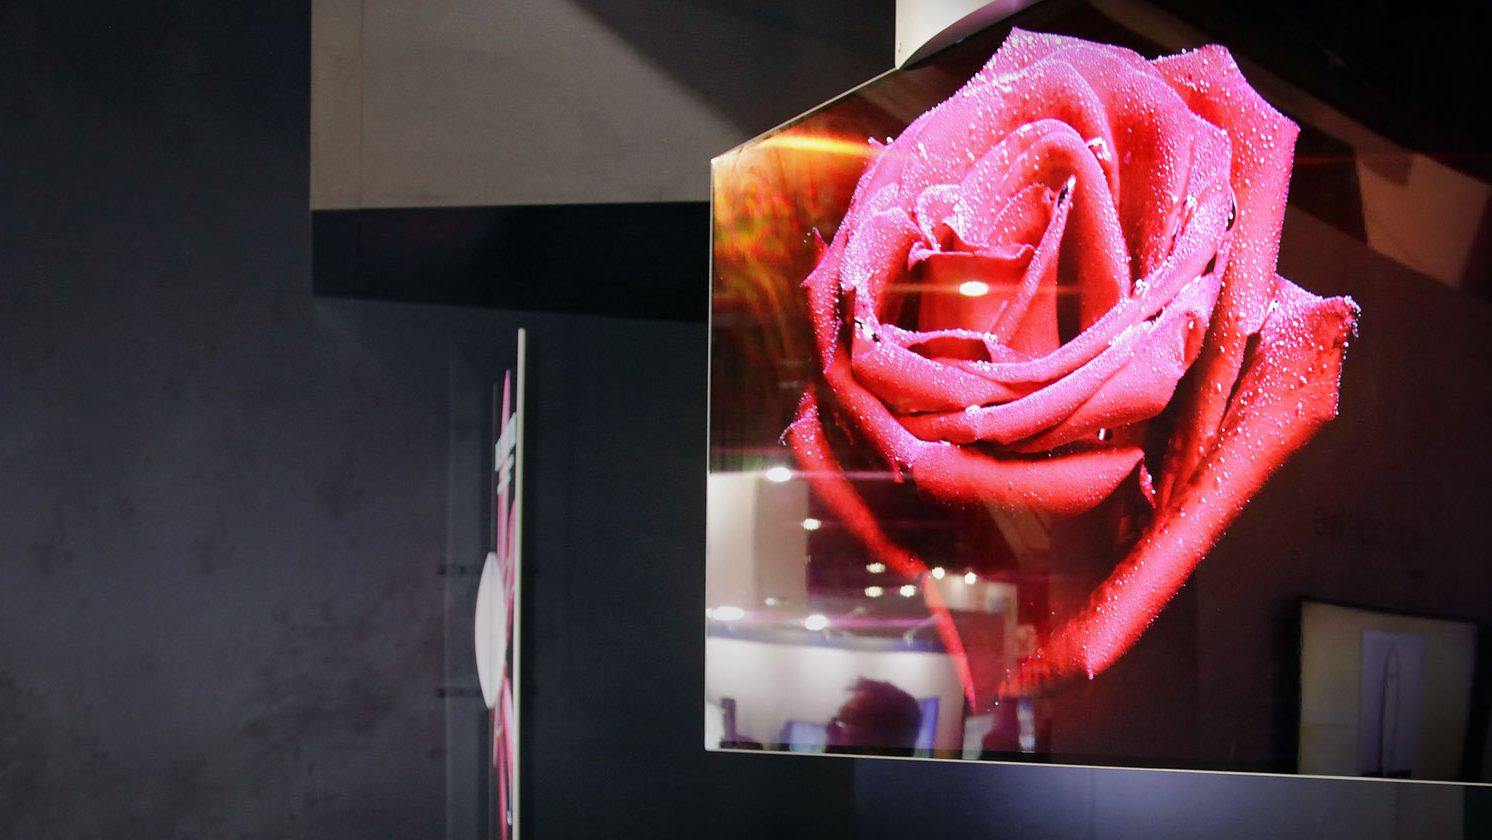 OLED display with a vibrant picture of a rose with morning dew on it